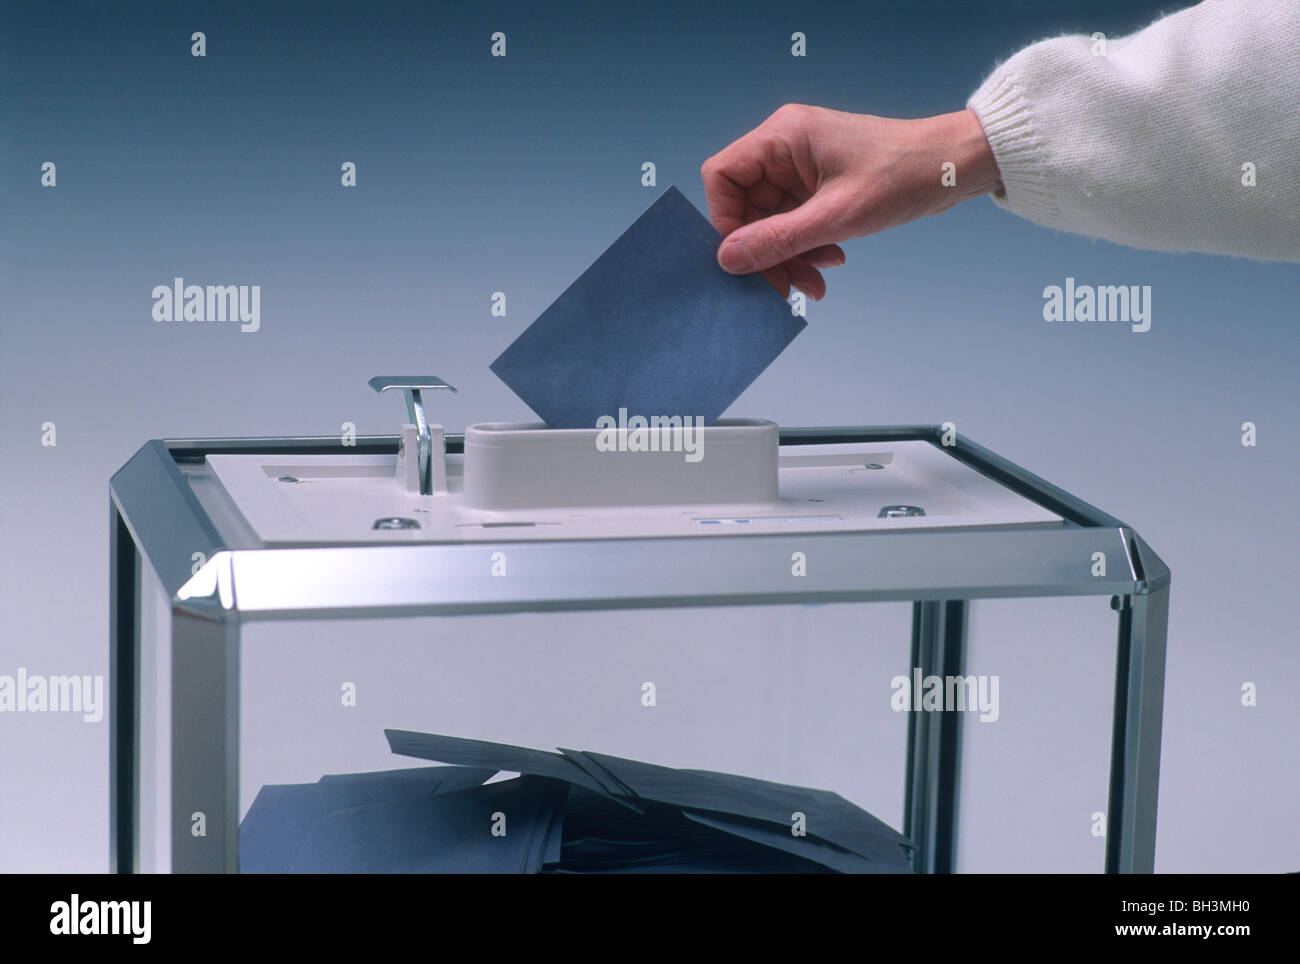 Hand putting a vote into a ballot box. - Stock Image